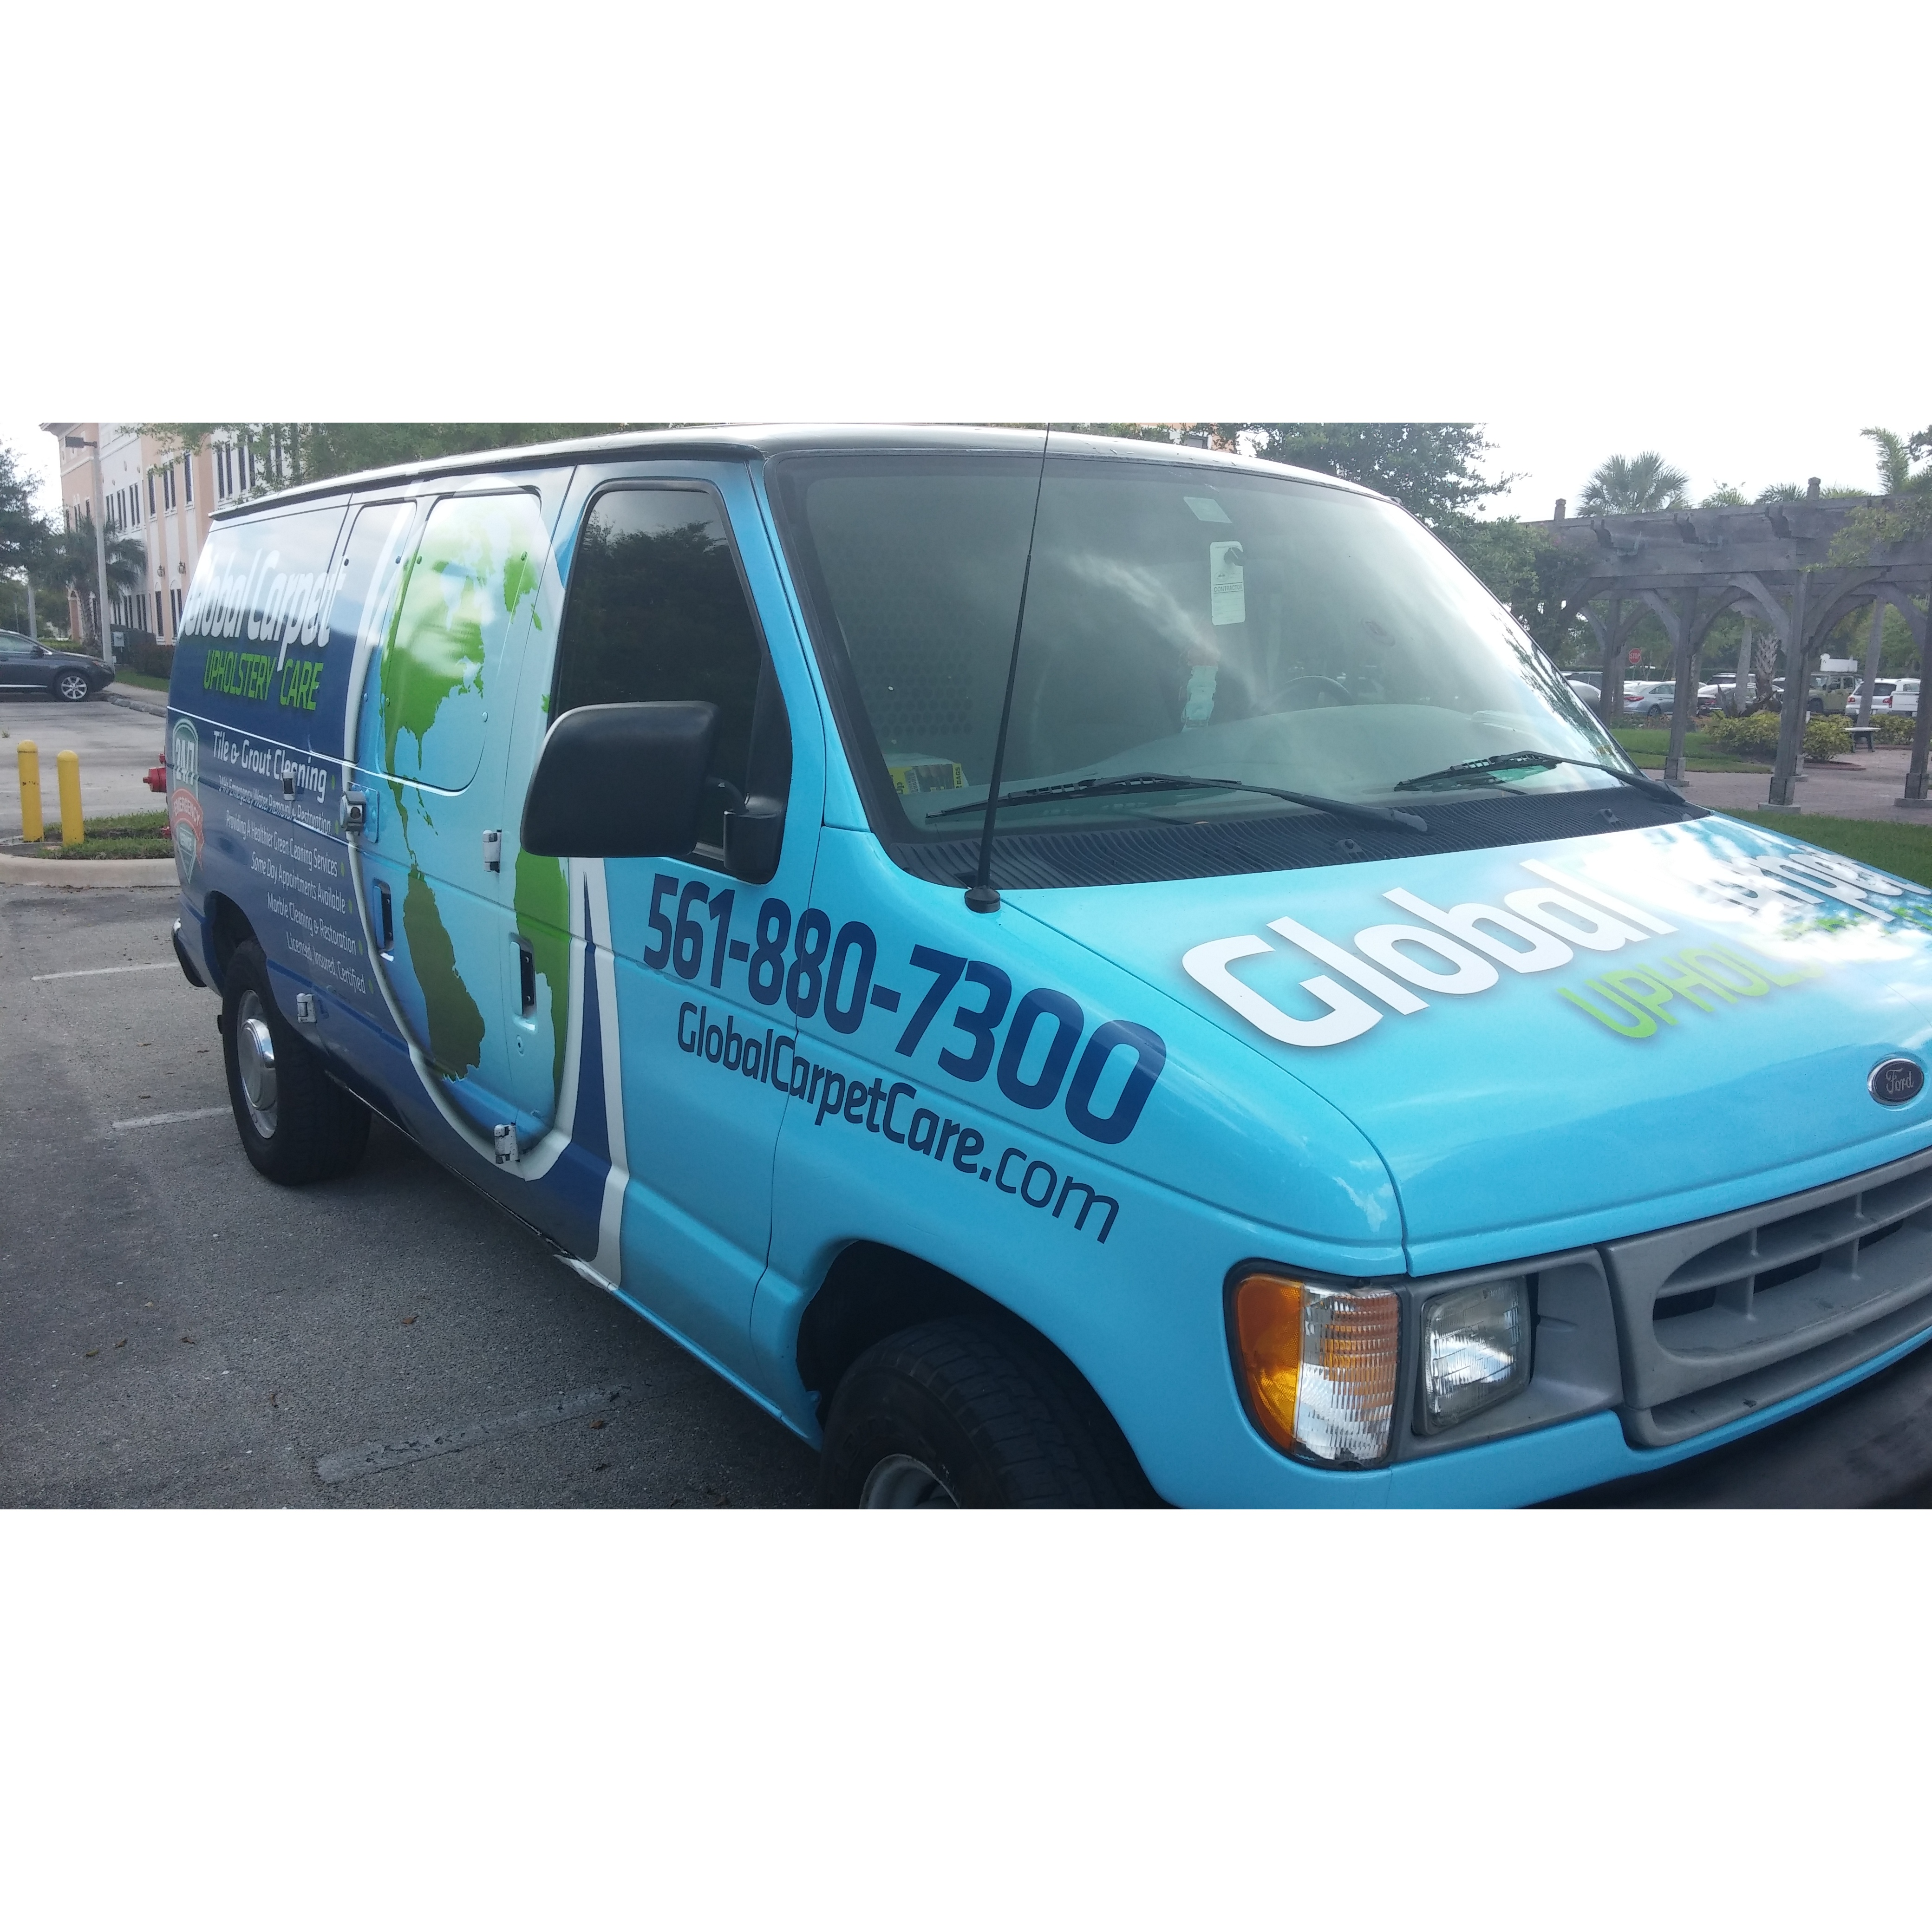 Global Carpet and Upholstery Care